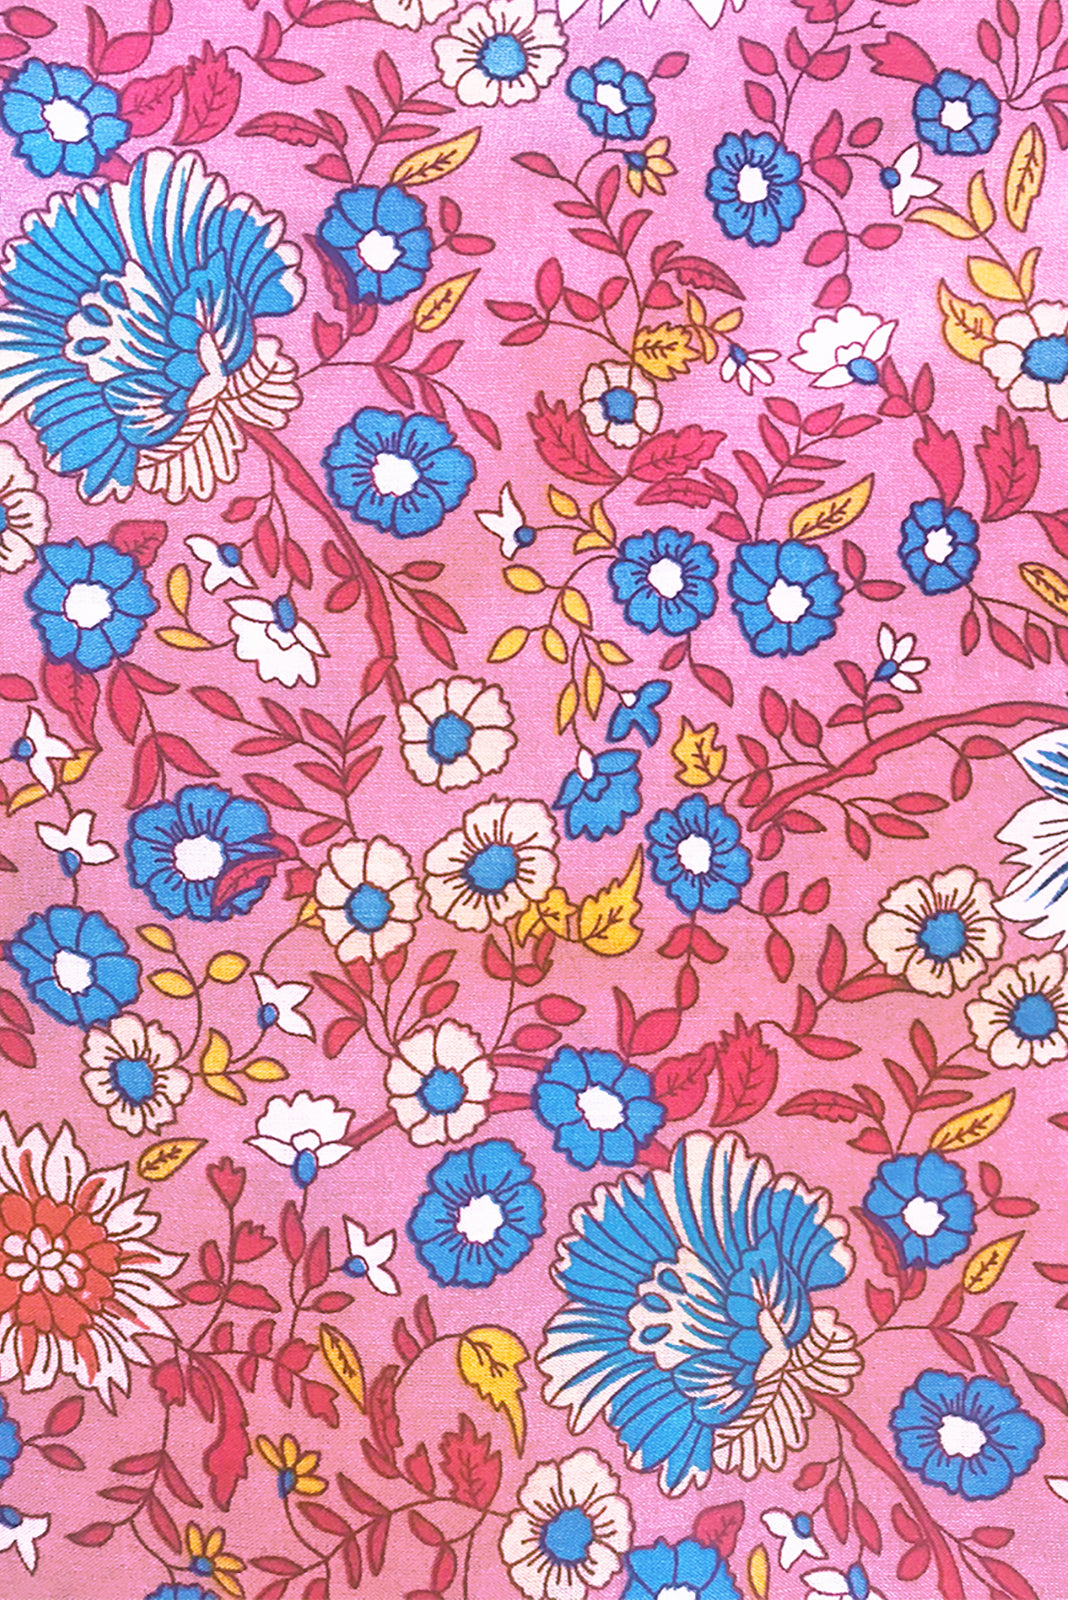 Fabric Swatch of Sapphire Raspberry Maxi Dress features soft pink base with raspberry, blue, white and yellow floral print in woven 100% rayon.